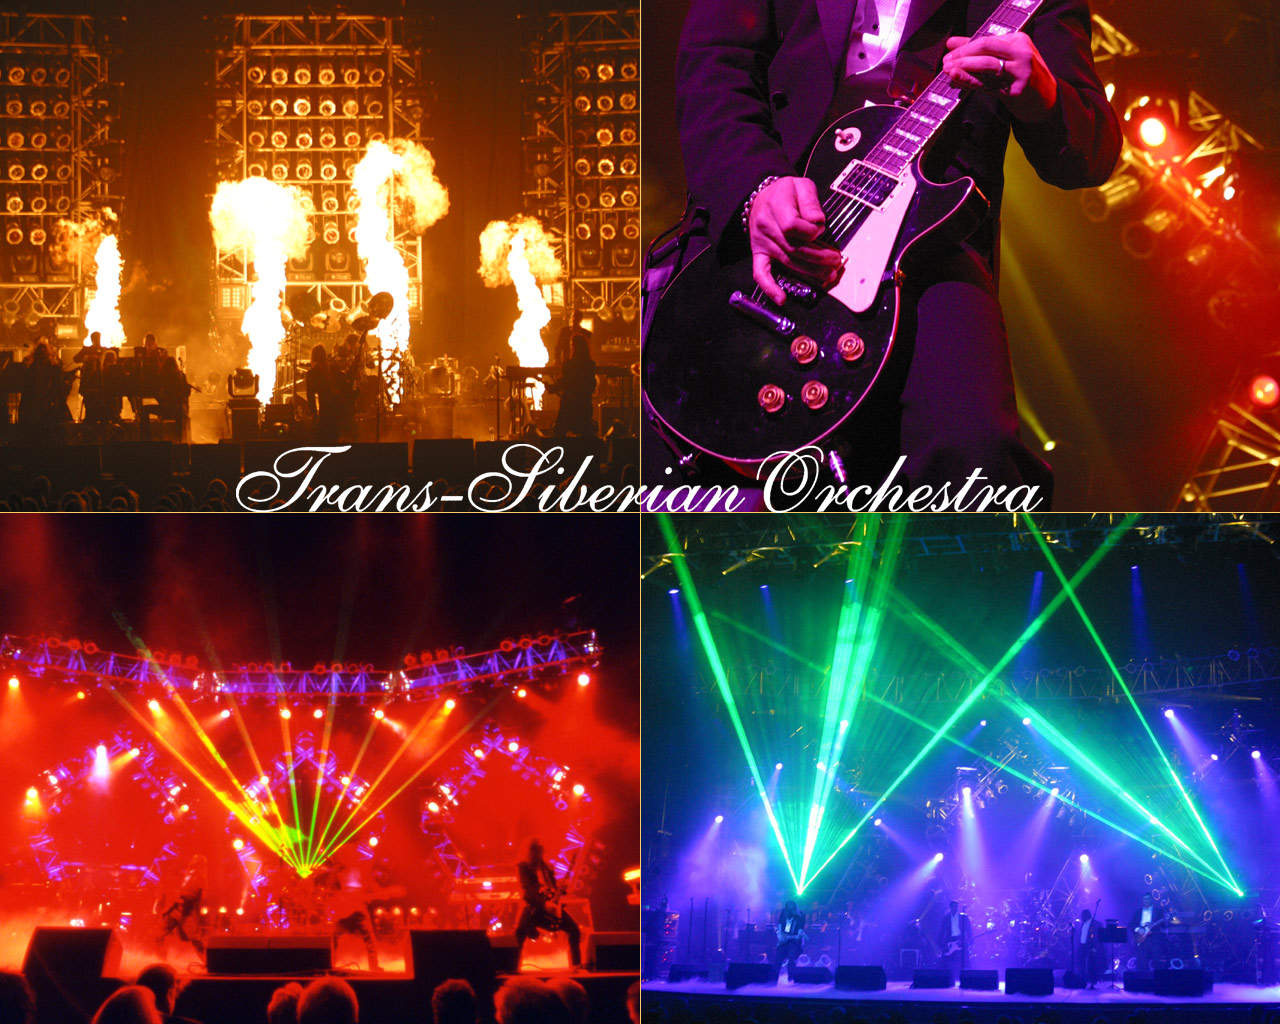 Trans-Siberian Orchestra to Finish Tour at KeyArena in December